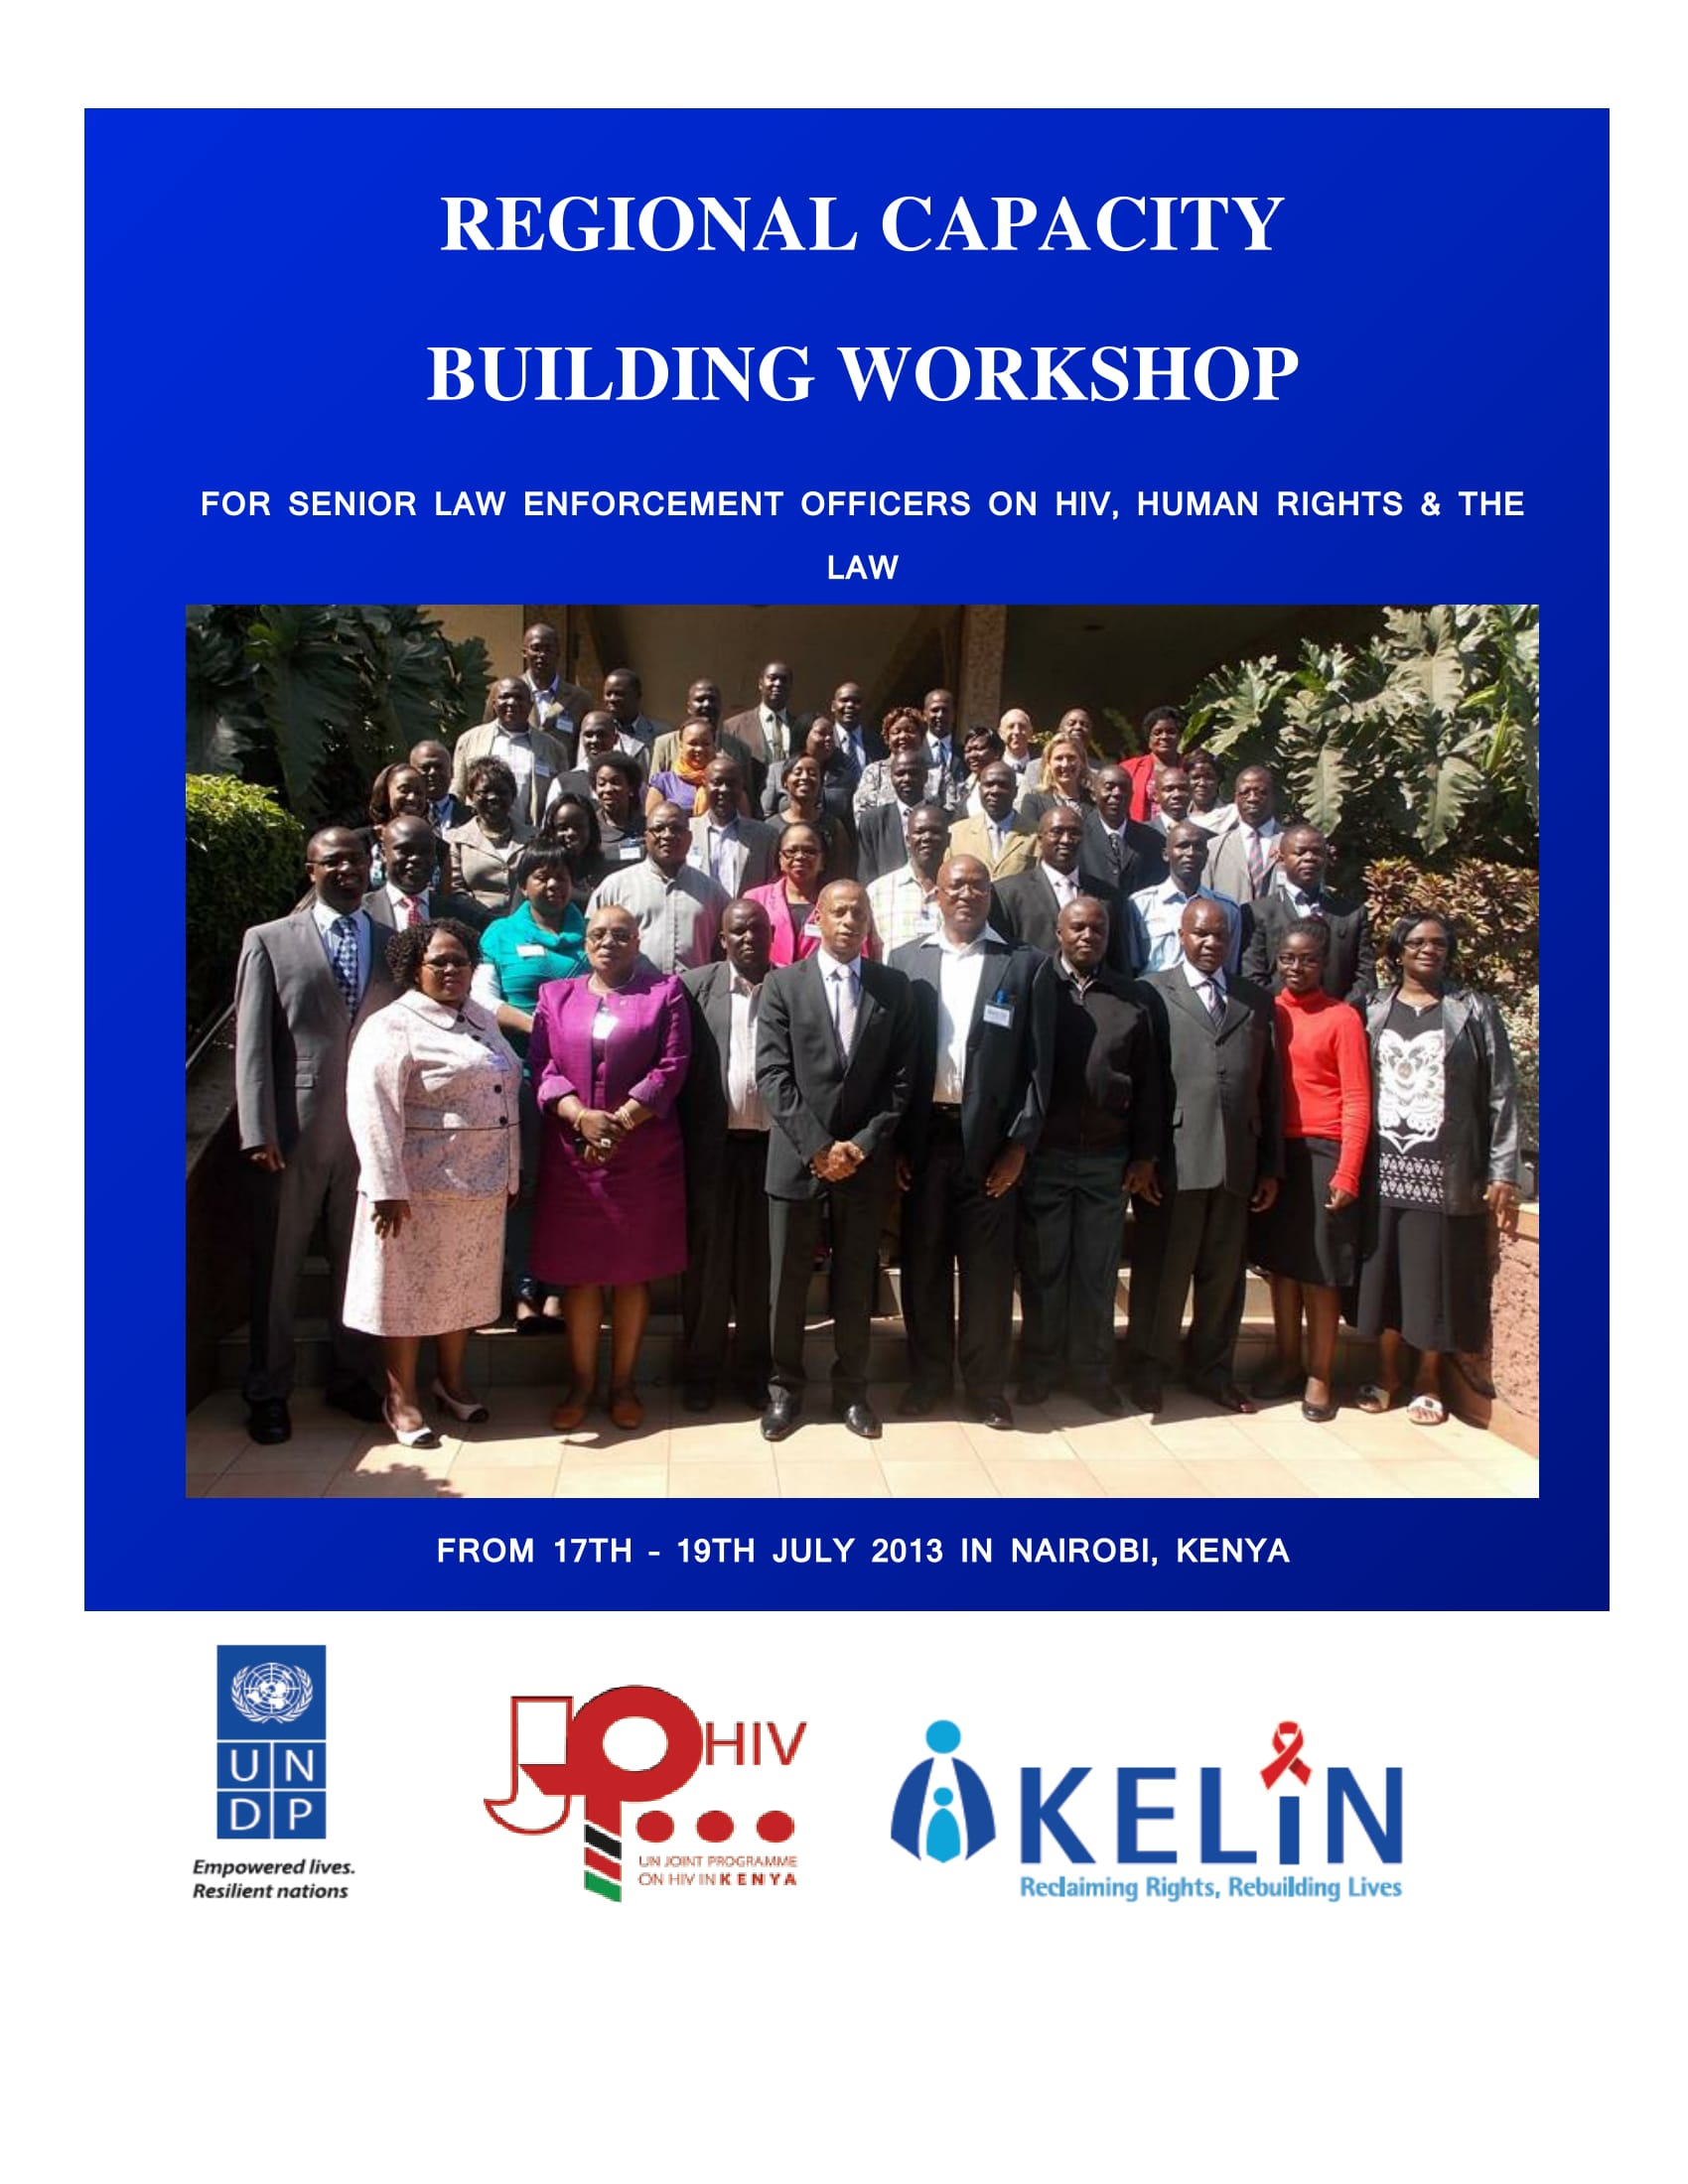 Regional Capacity Building Workshop for Senior Law Enforcement Officers on HIV, Human Rights & the Law - Meeting Report